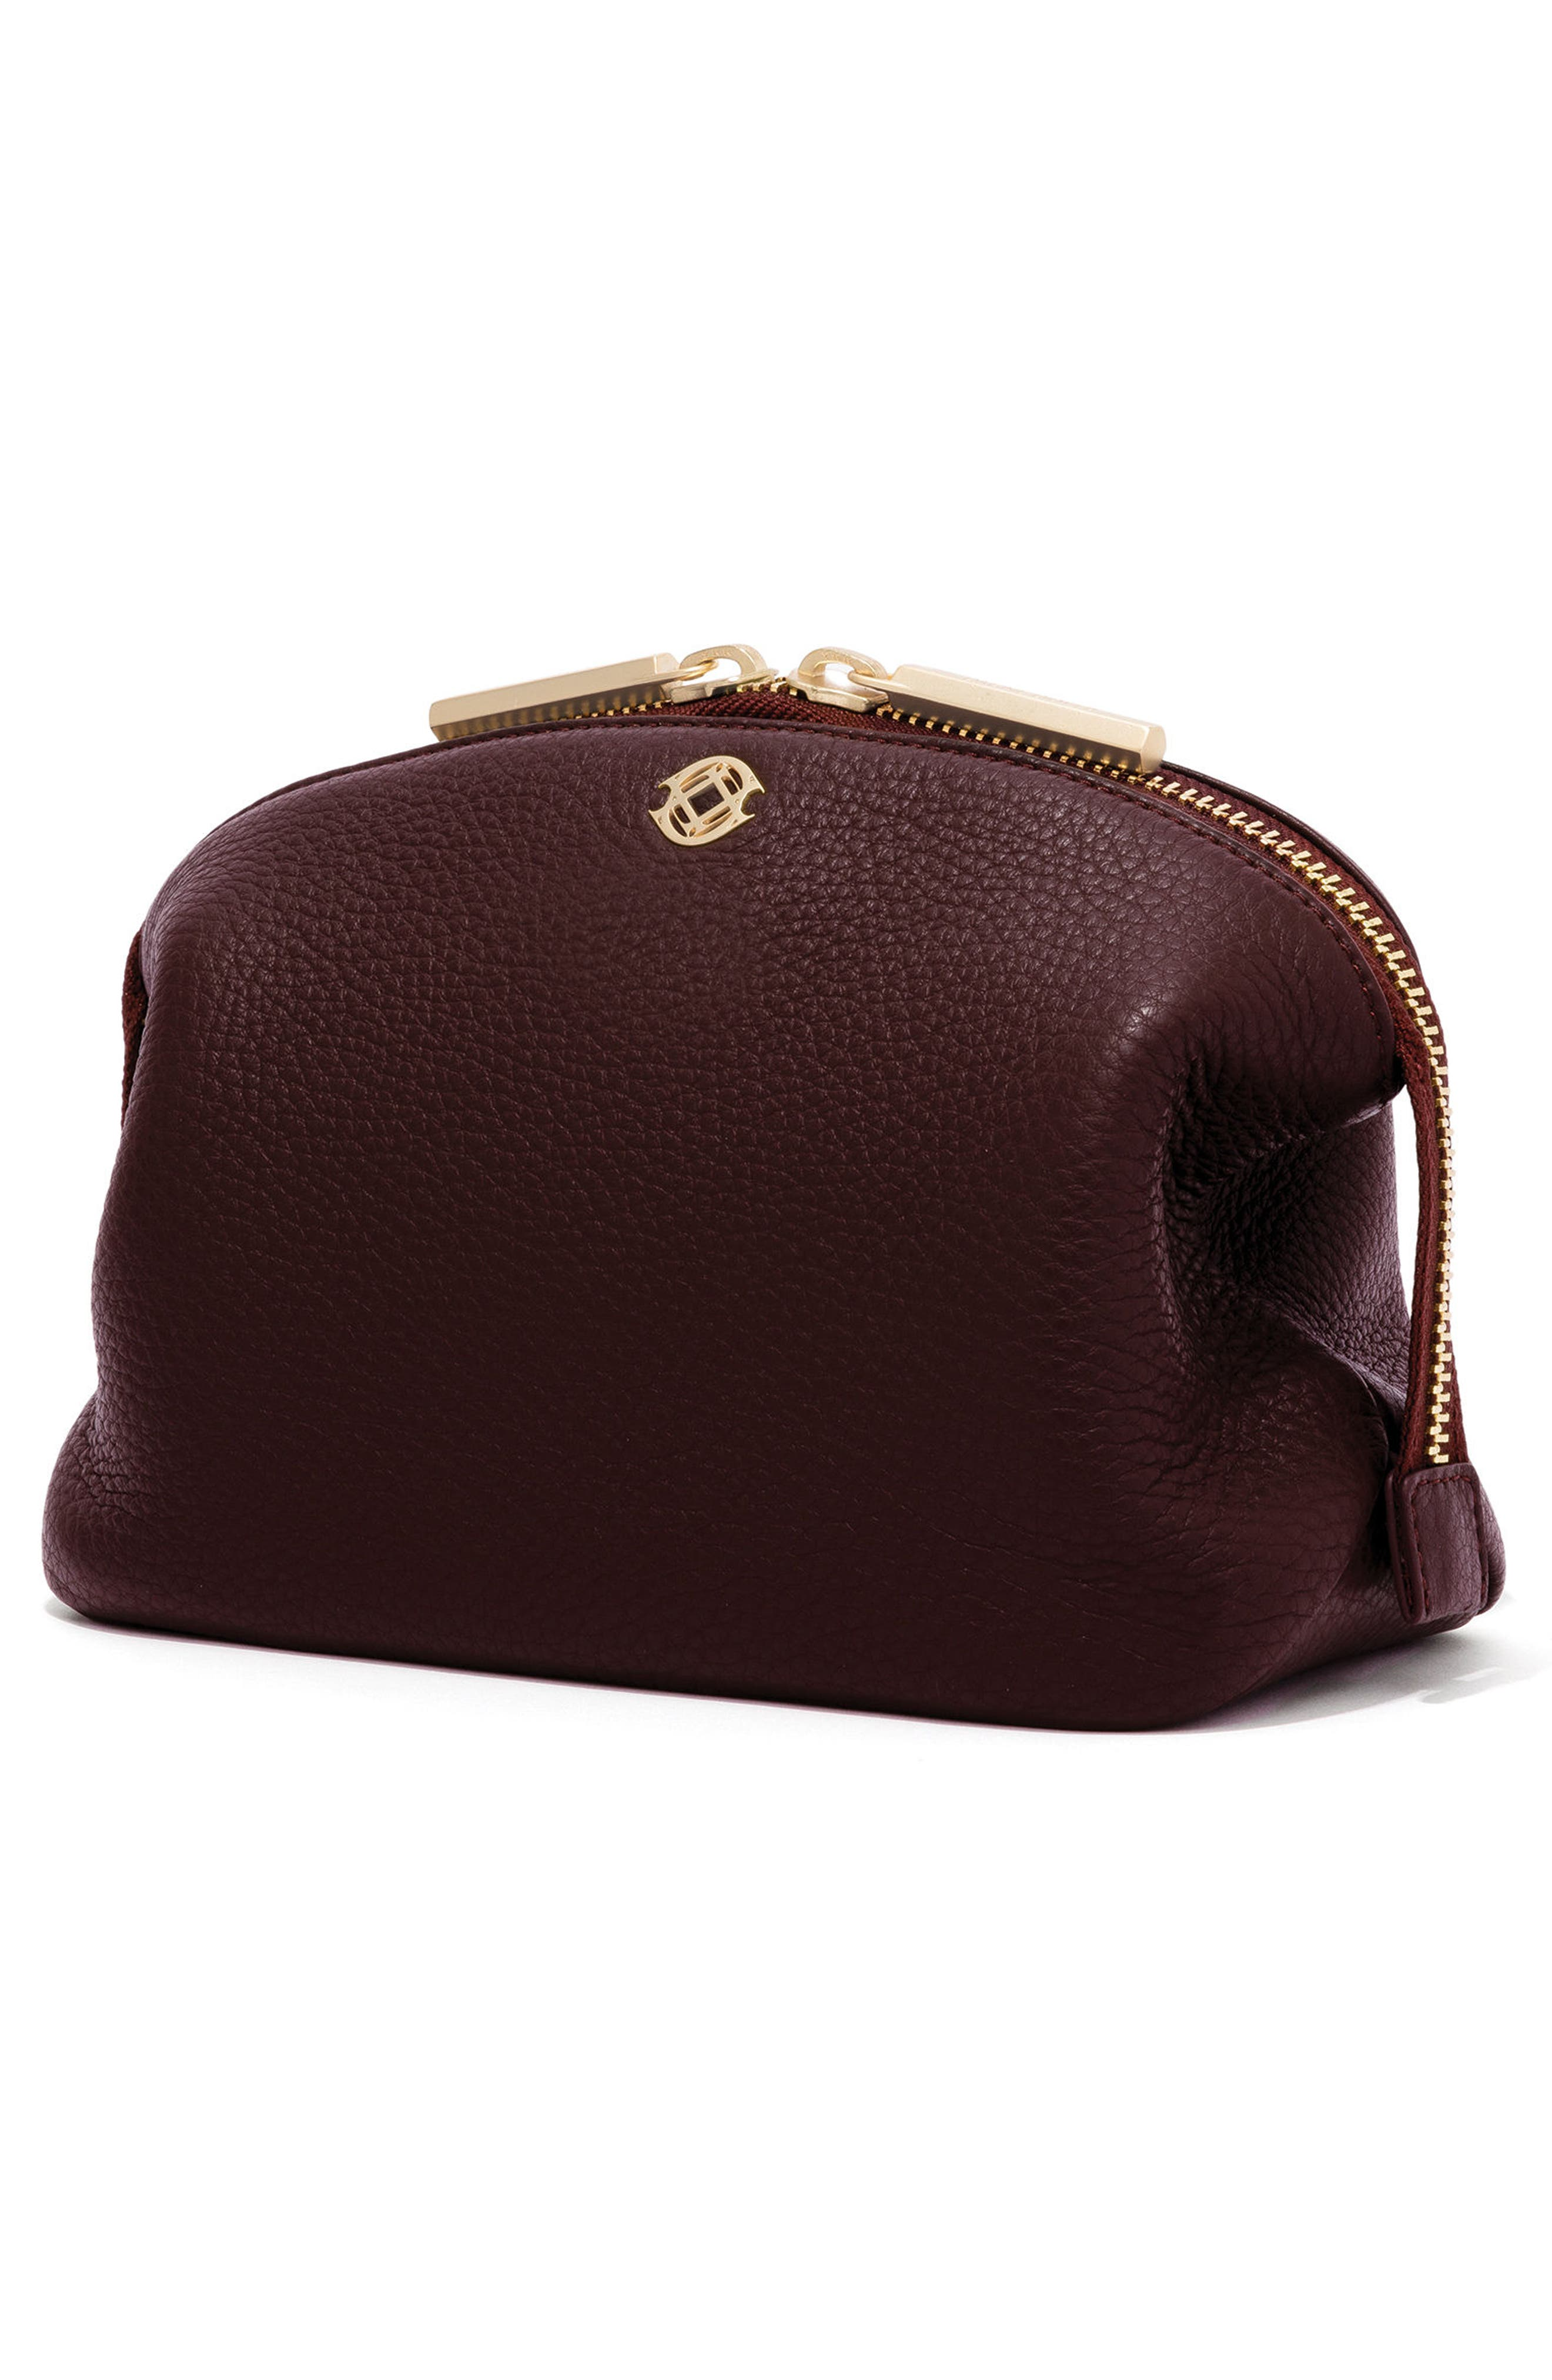 Large Lola Leather Cosmetics Pouch,                             Alternate thumbnail 5, color,                             OXBLOOD